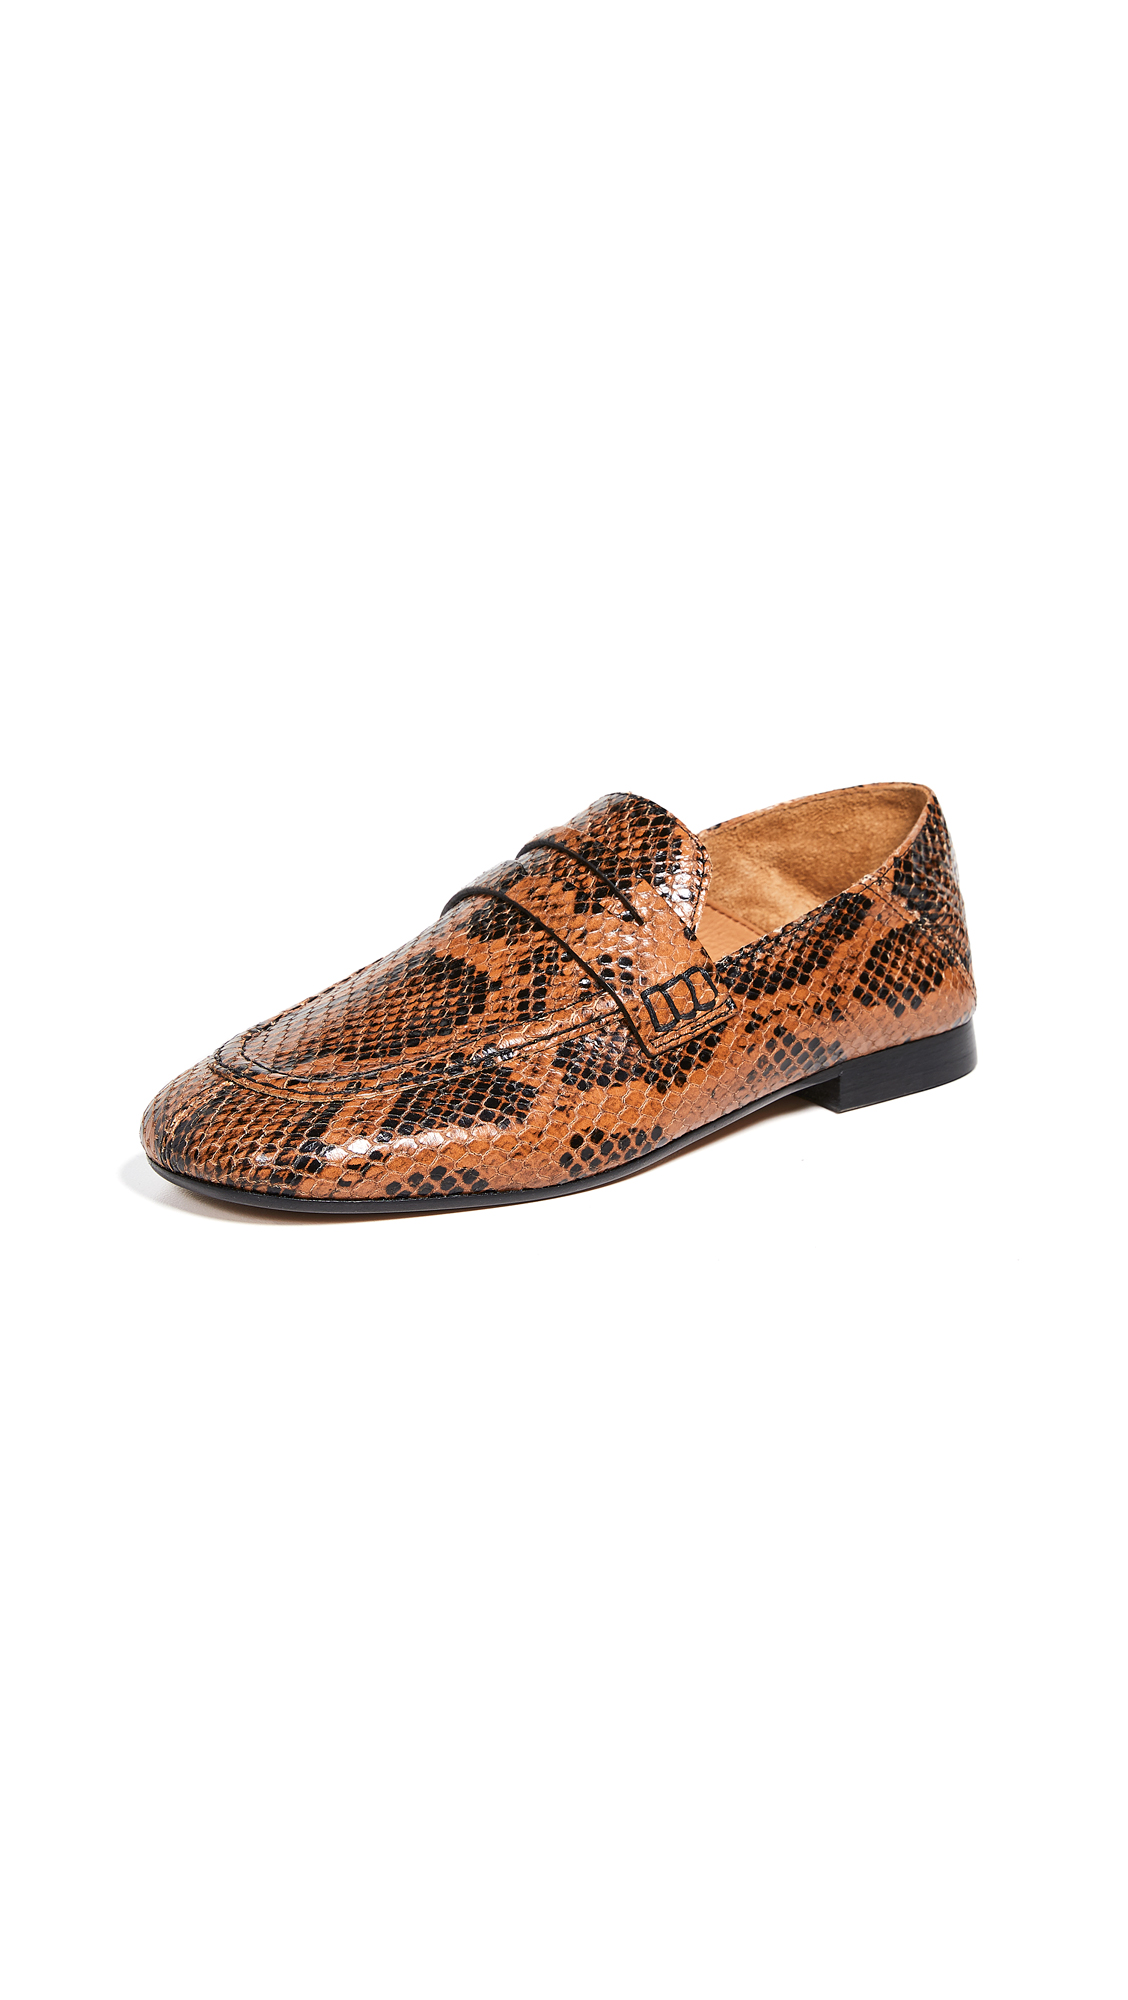 Isabel Marant Fezzy Convertible Loafers - Cognac